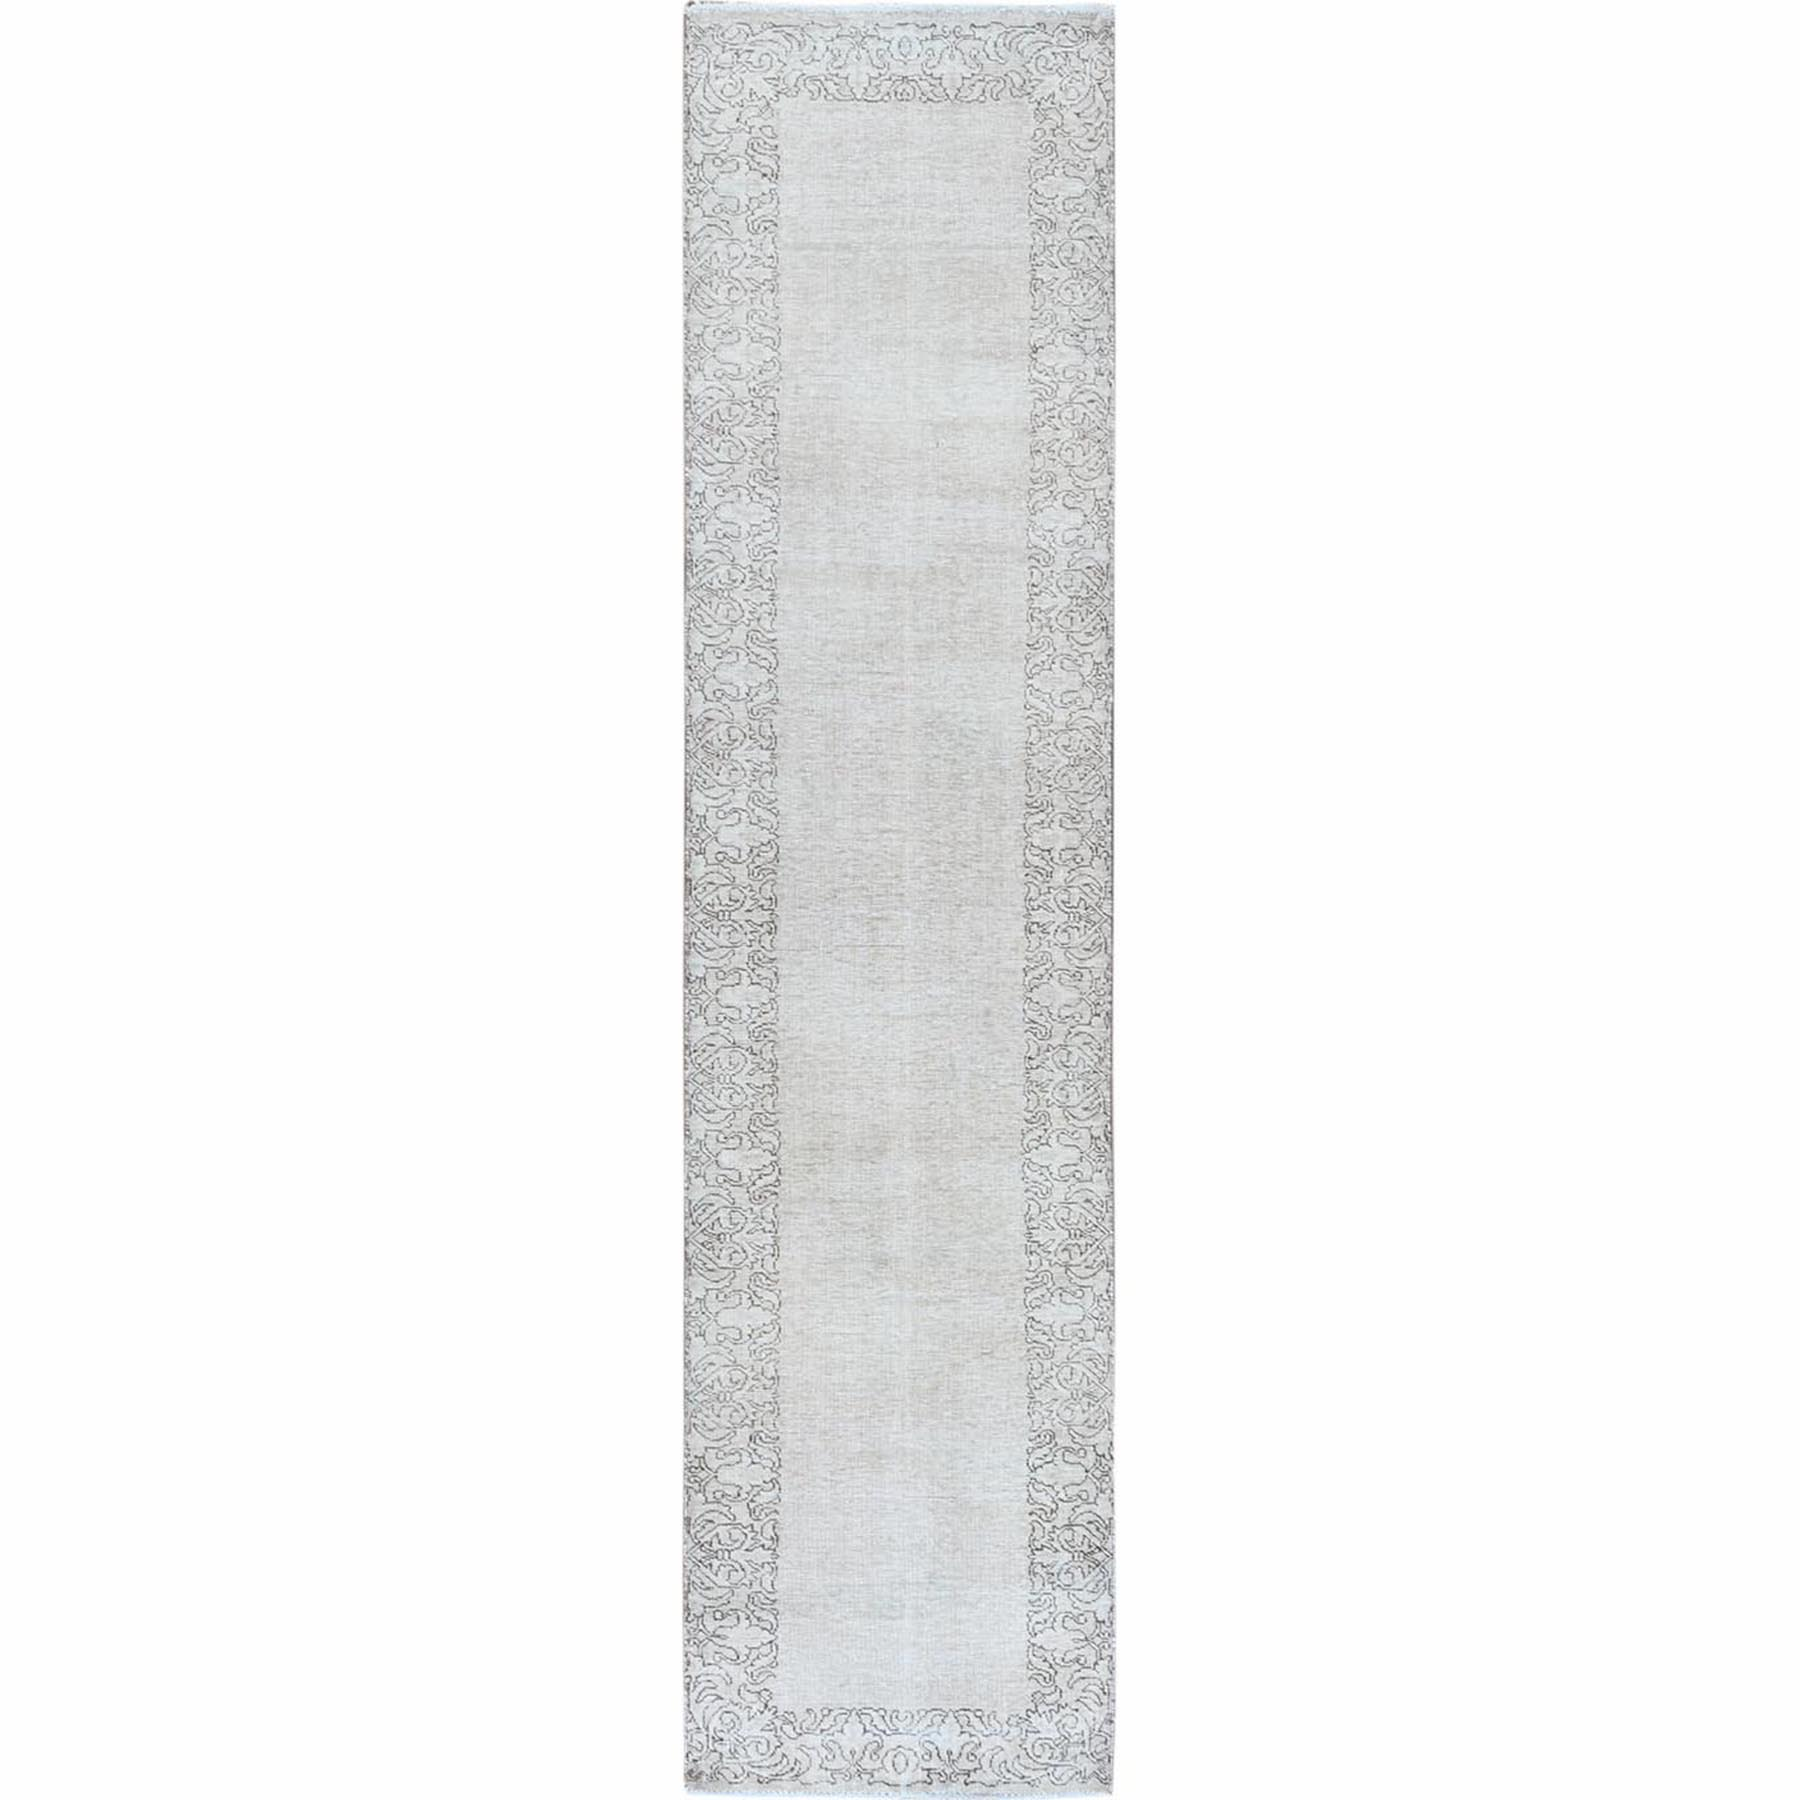 Fetneh Collection And Vintage Overdyed Collection Hand Knotted Ivory Rug No: 1121926